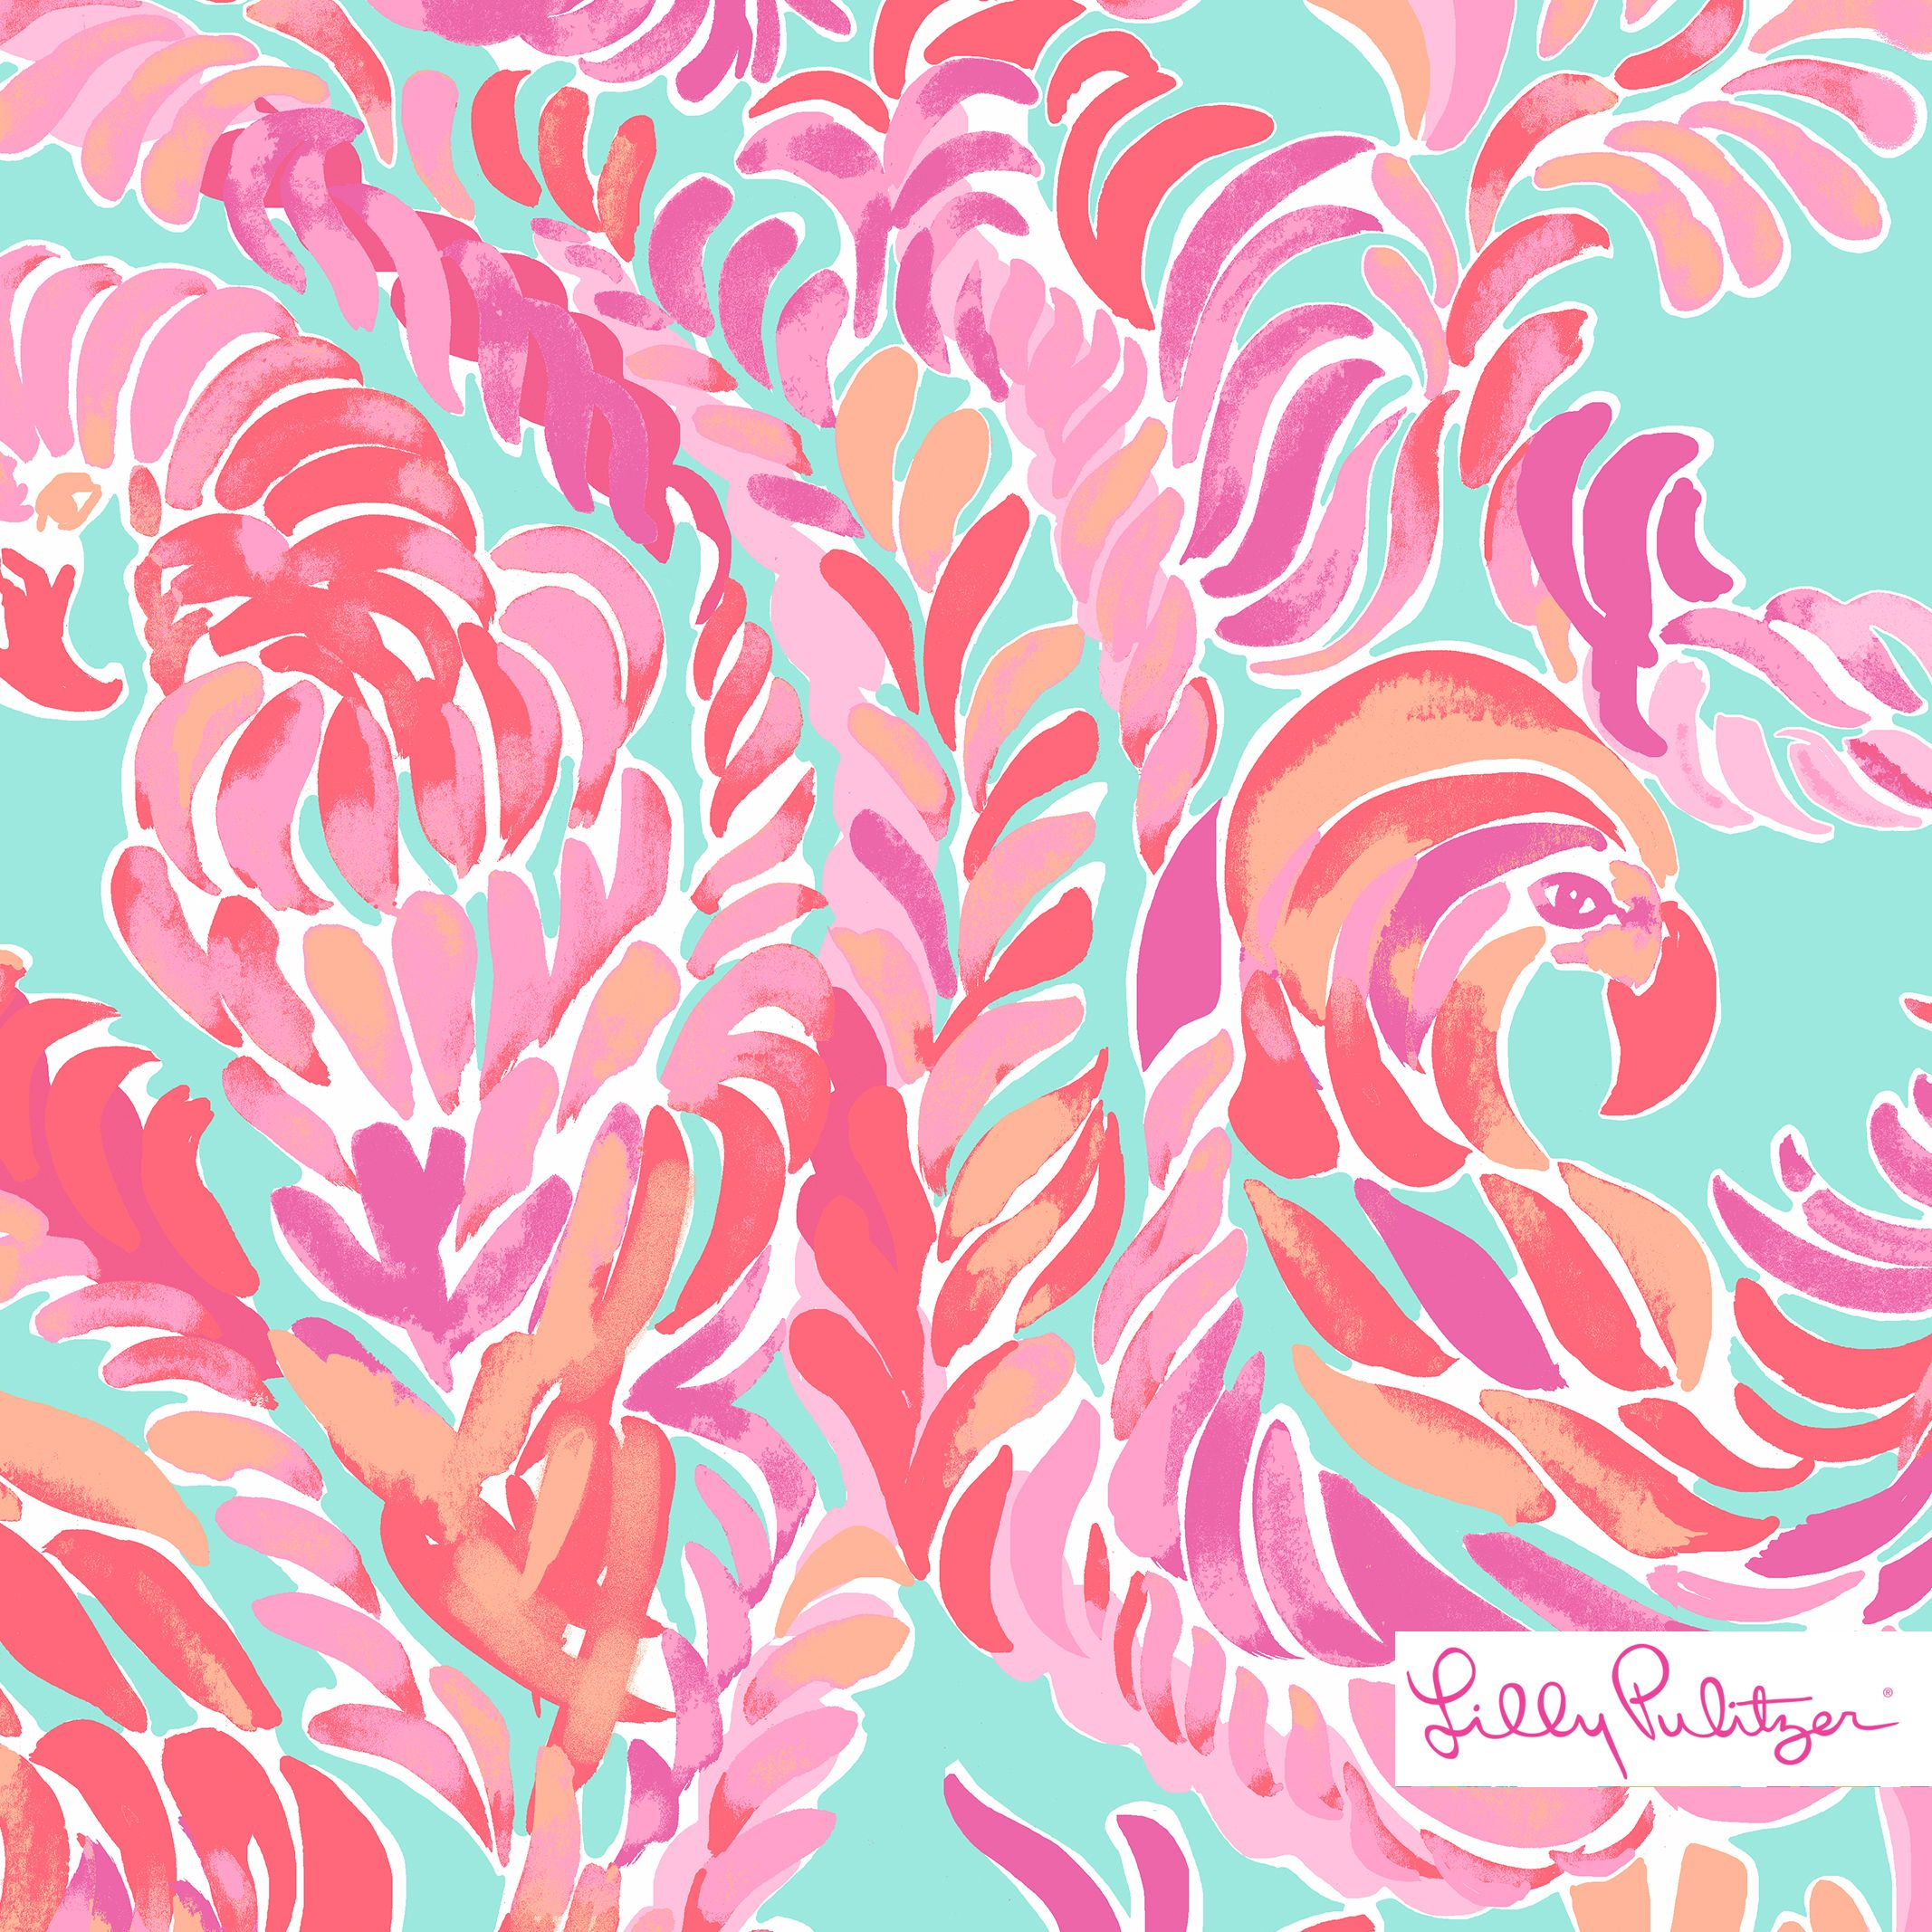 Lilly Pulitzer Patterns Love Birds Lilly Pulitzer Pinterest Lilly Pulitzer Prints